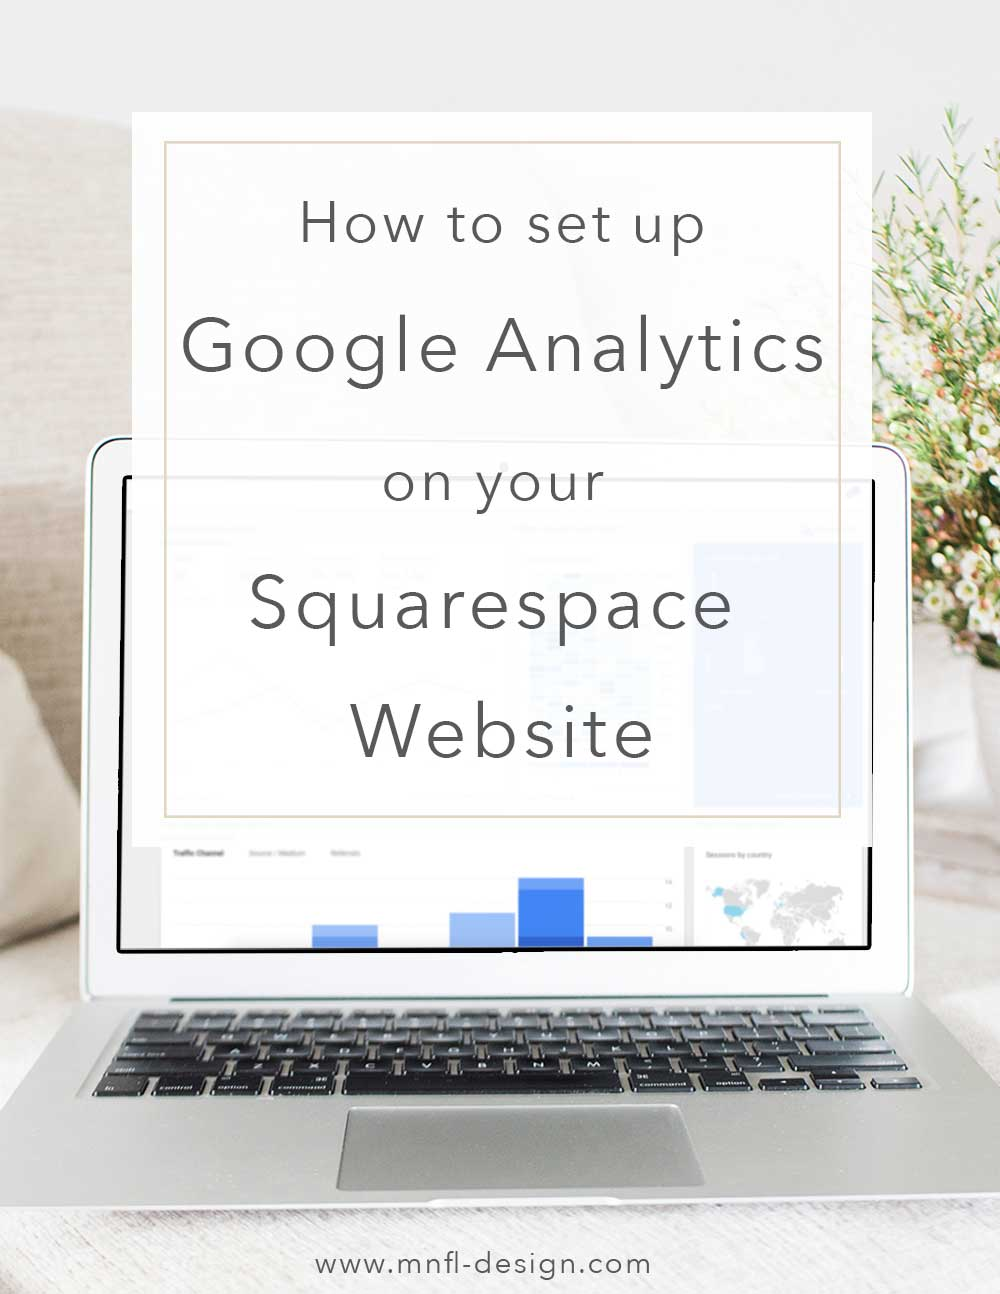 How to set up Google Analytics on your Squarespace Website | MNFL Design